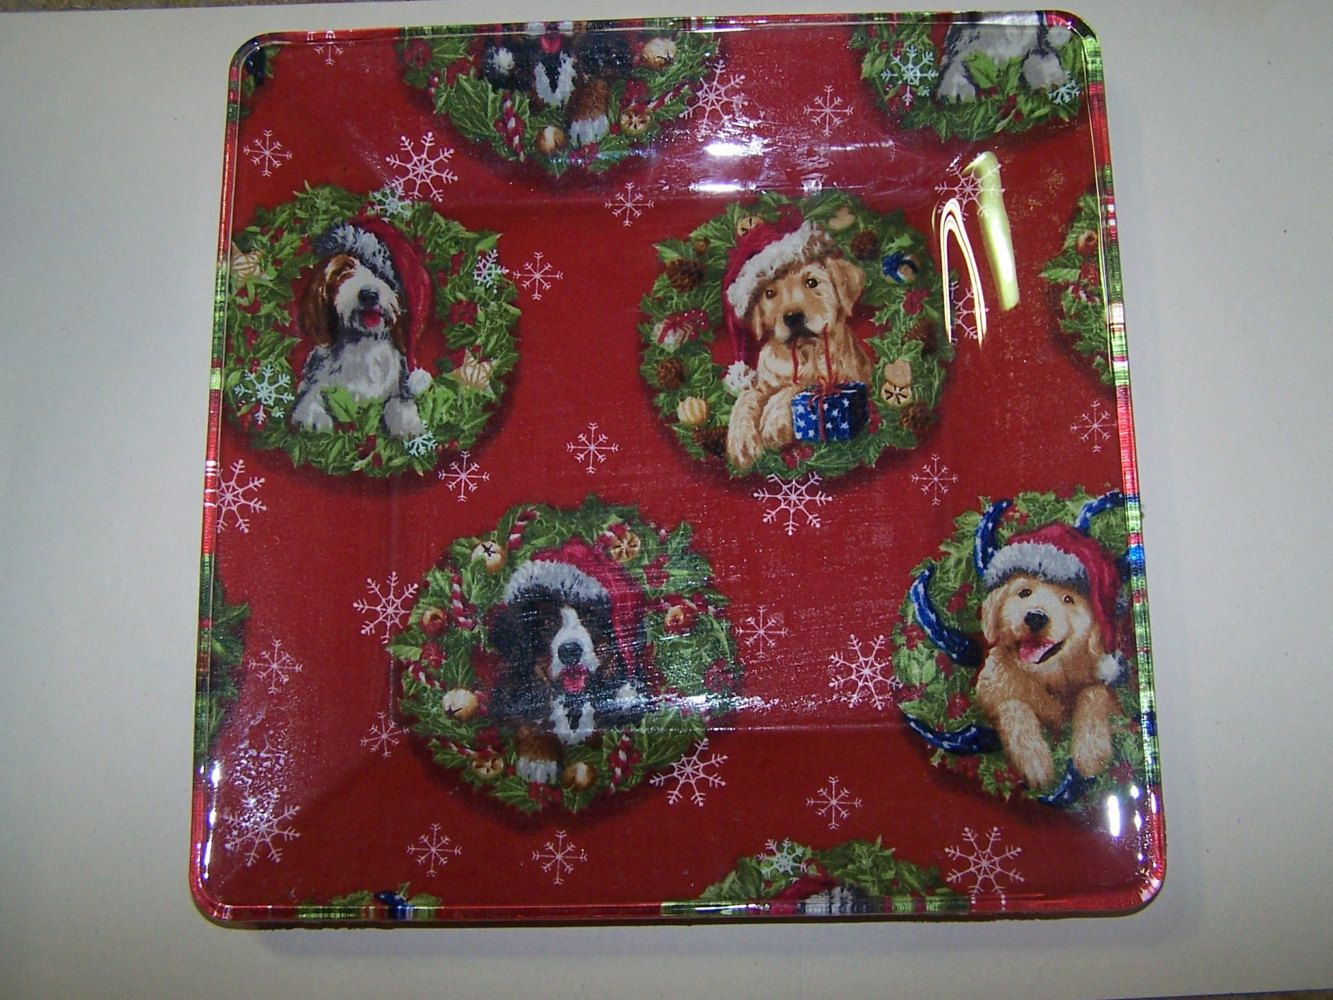 Holiday dogs. Serving plate. Decorative plates. Dogs and wreaths. & Christmas dogs. Holiday dogs. Serving plate. Decorative plates. Dogs ...